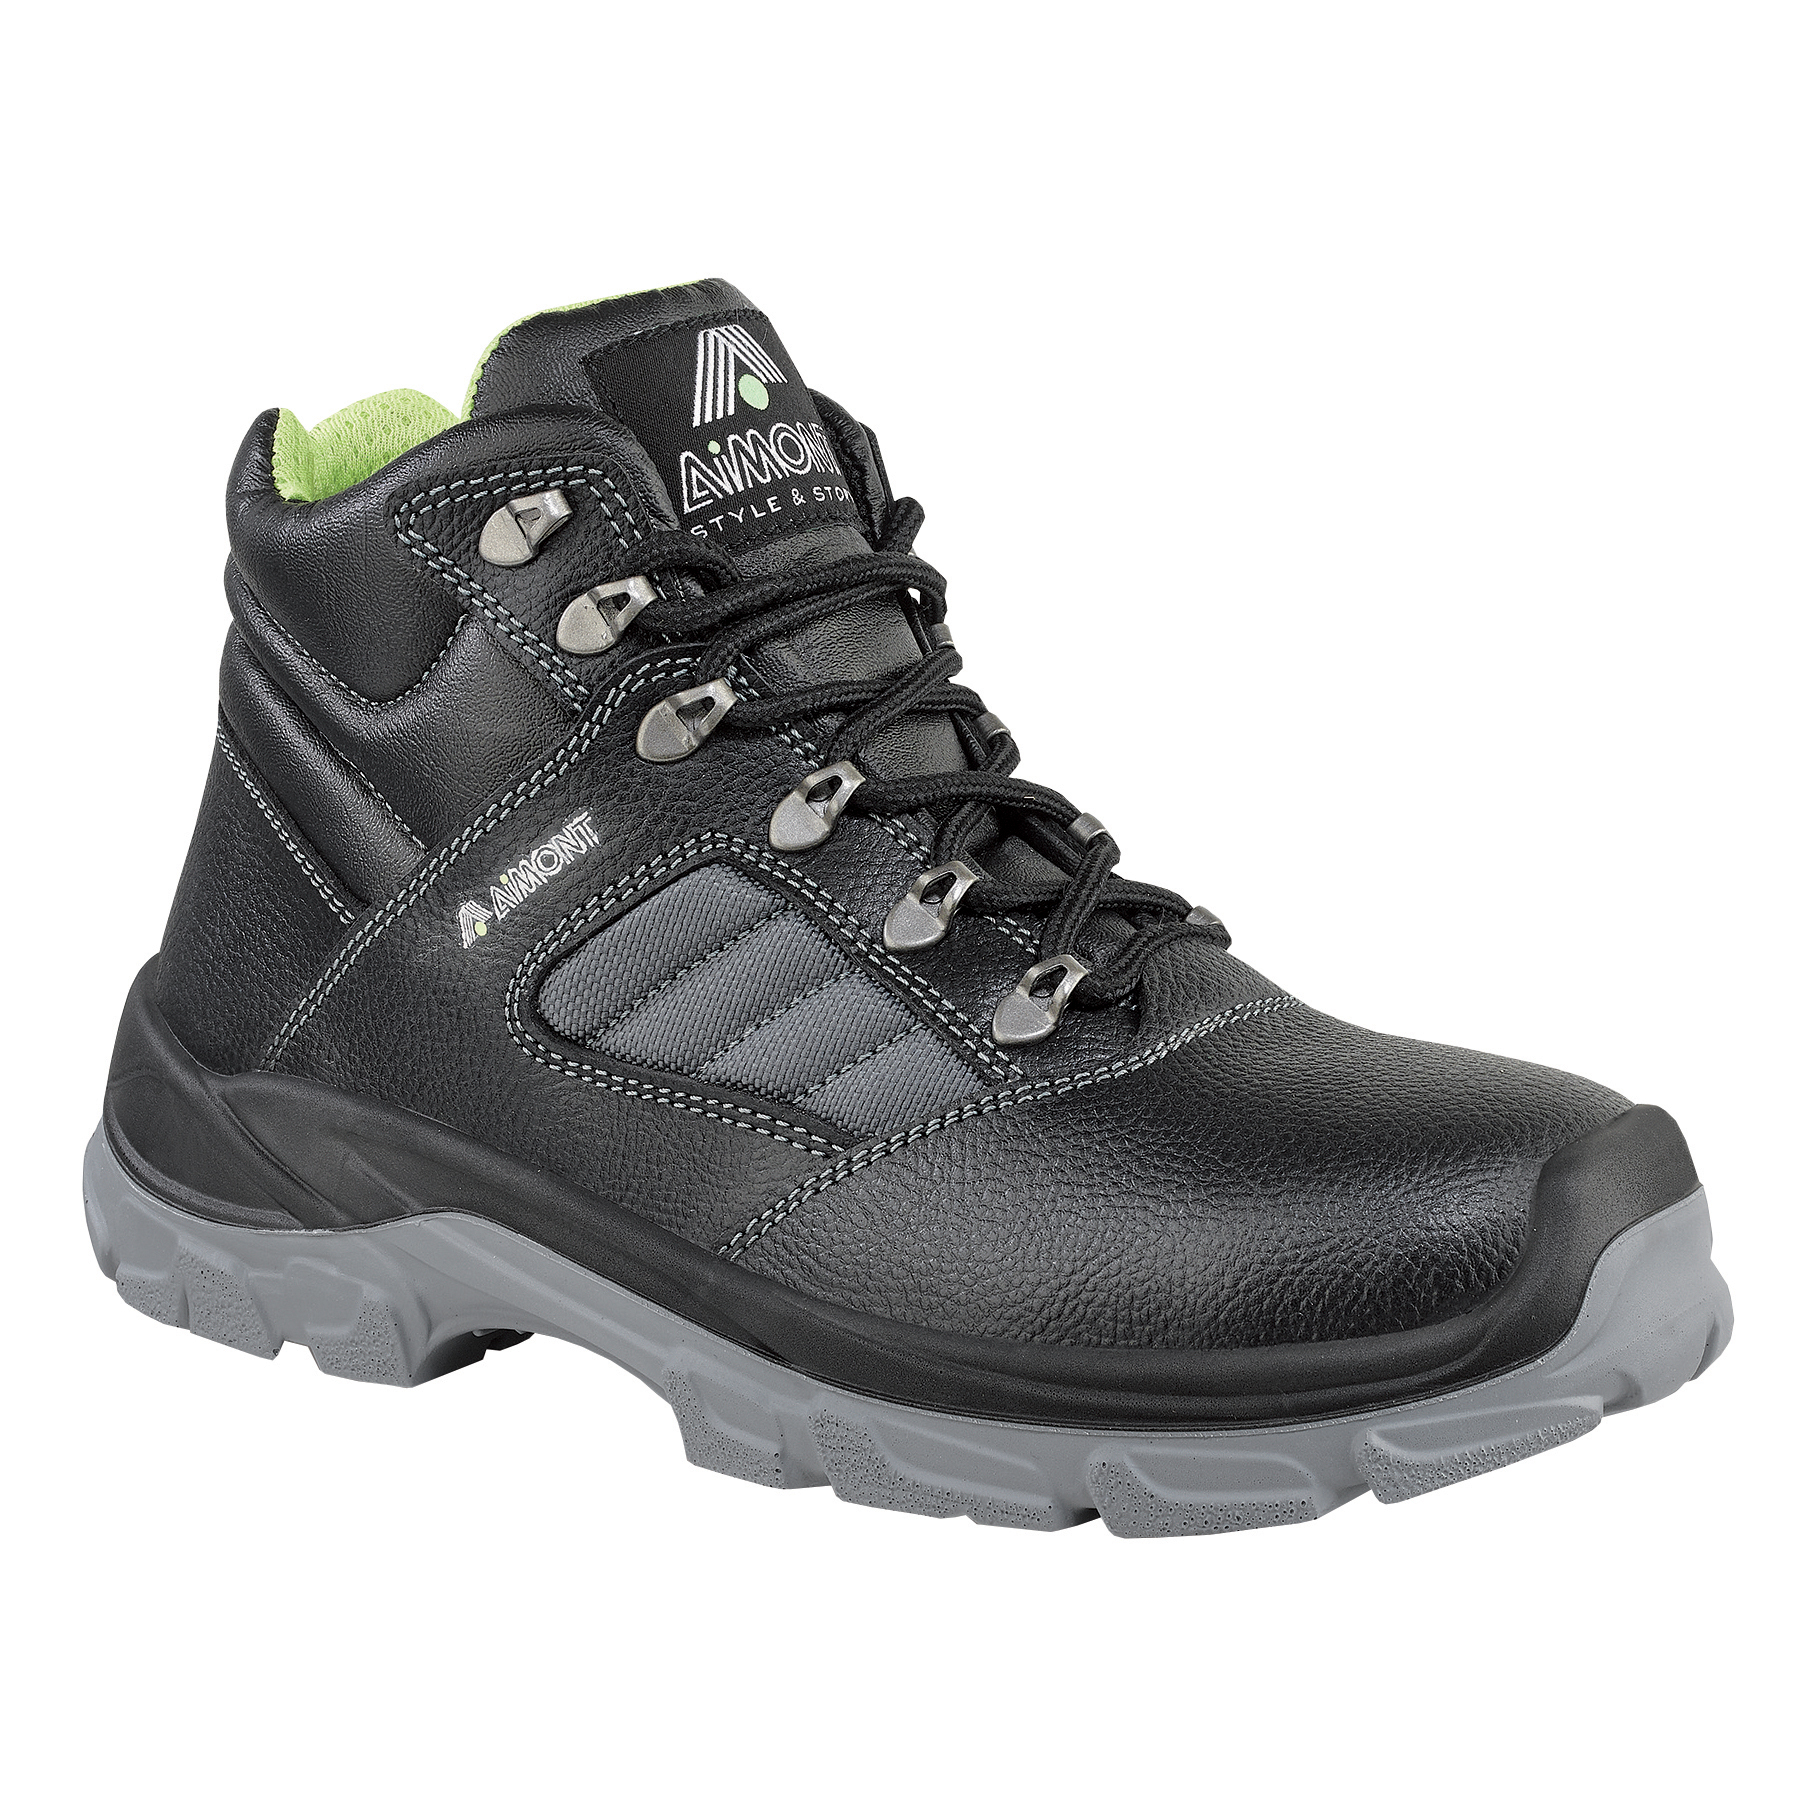 Aimont Rhino Safety Boots Protective Toecap Size 8 Black Ref DYC0508 [Pair]